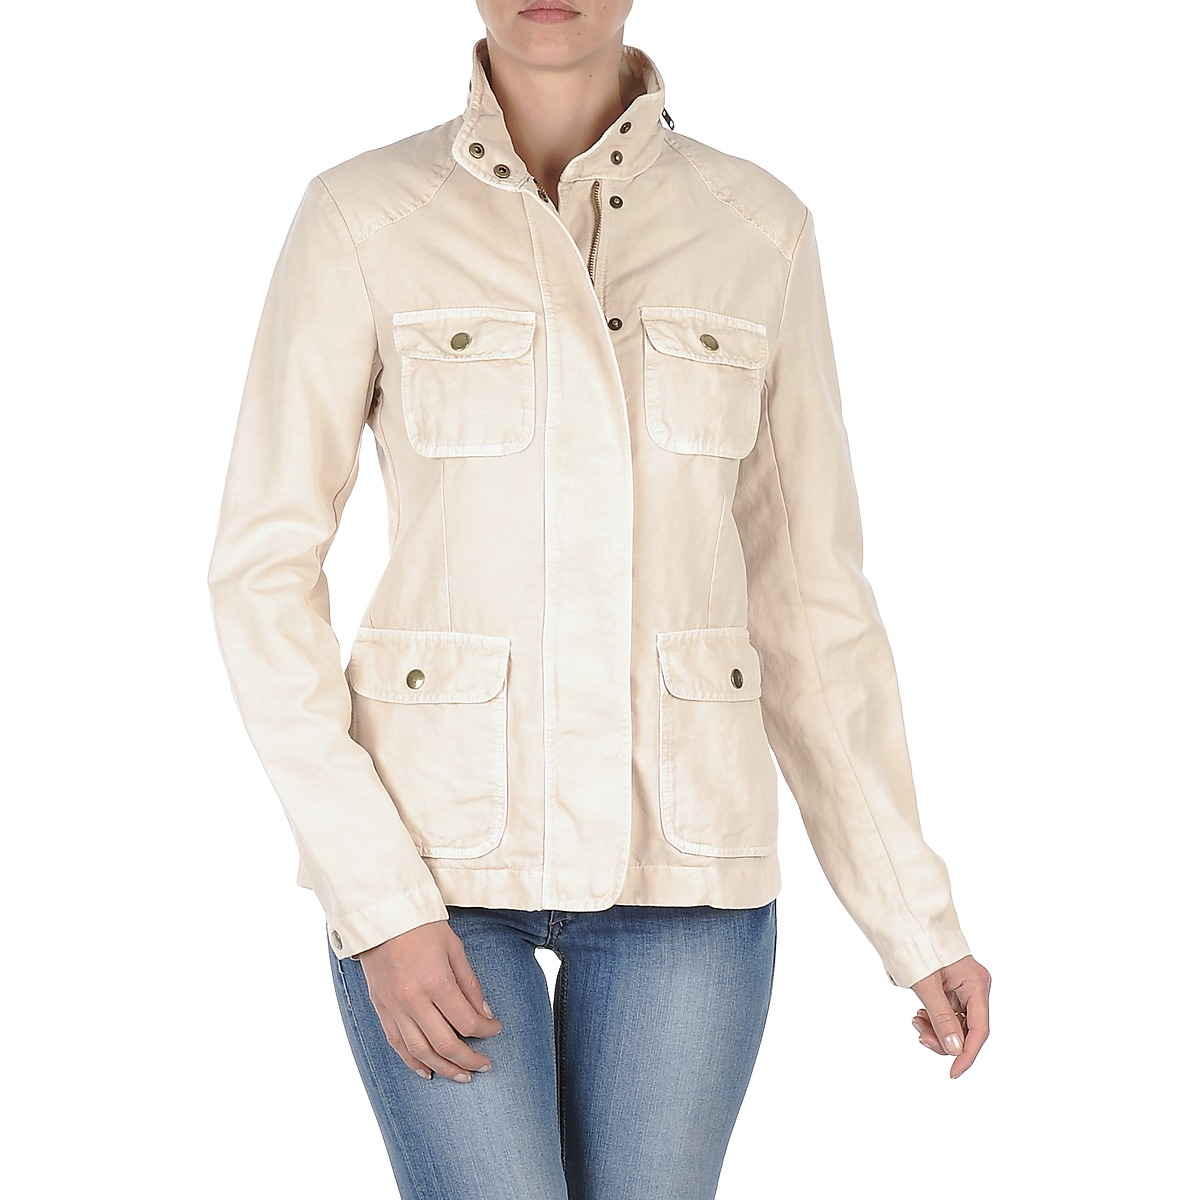 Gant COTTON LINEN 4PKT JACKET